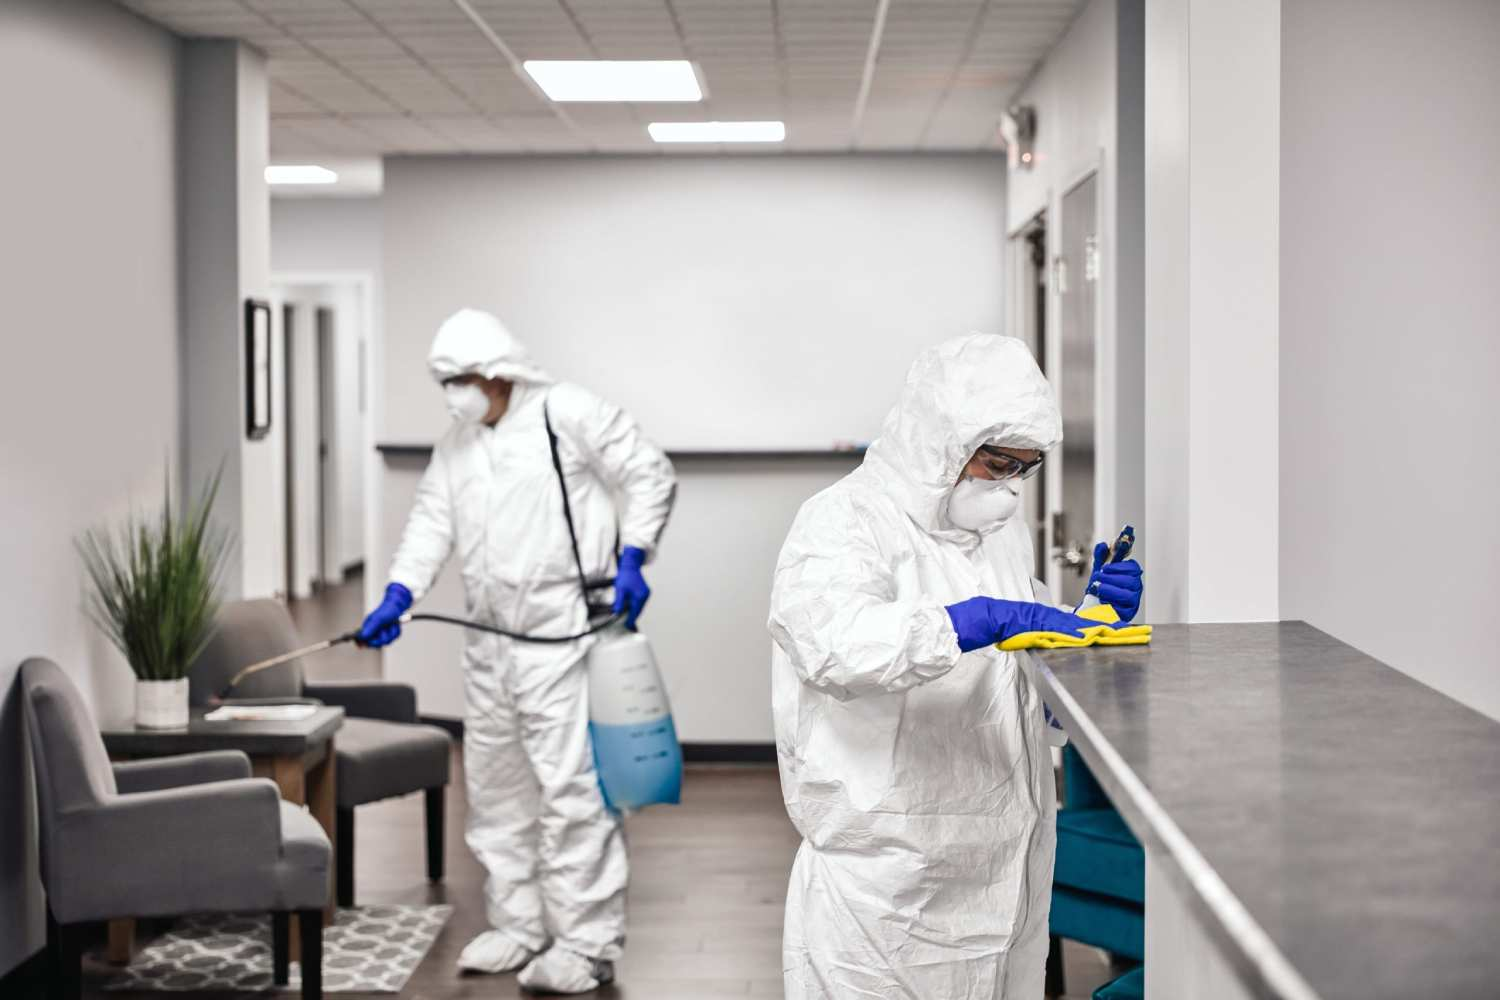 Two employees in hazmat suits disinfecting an office